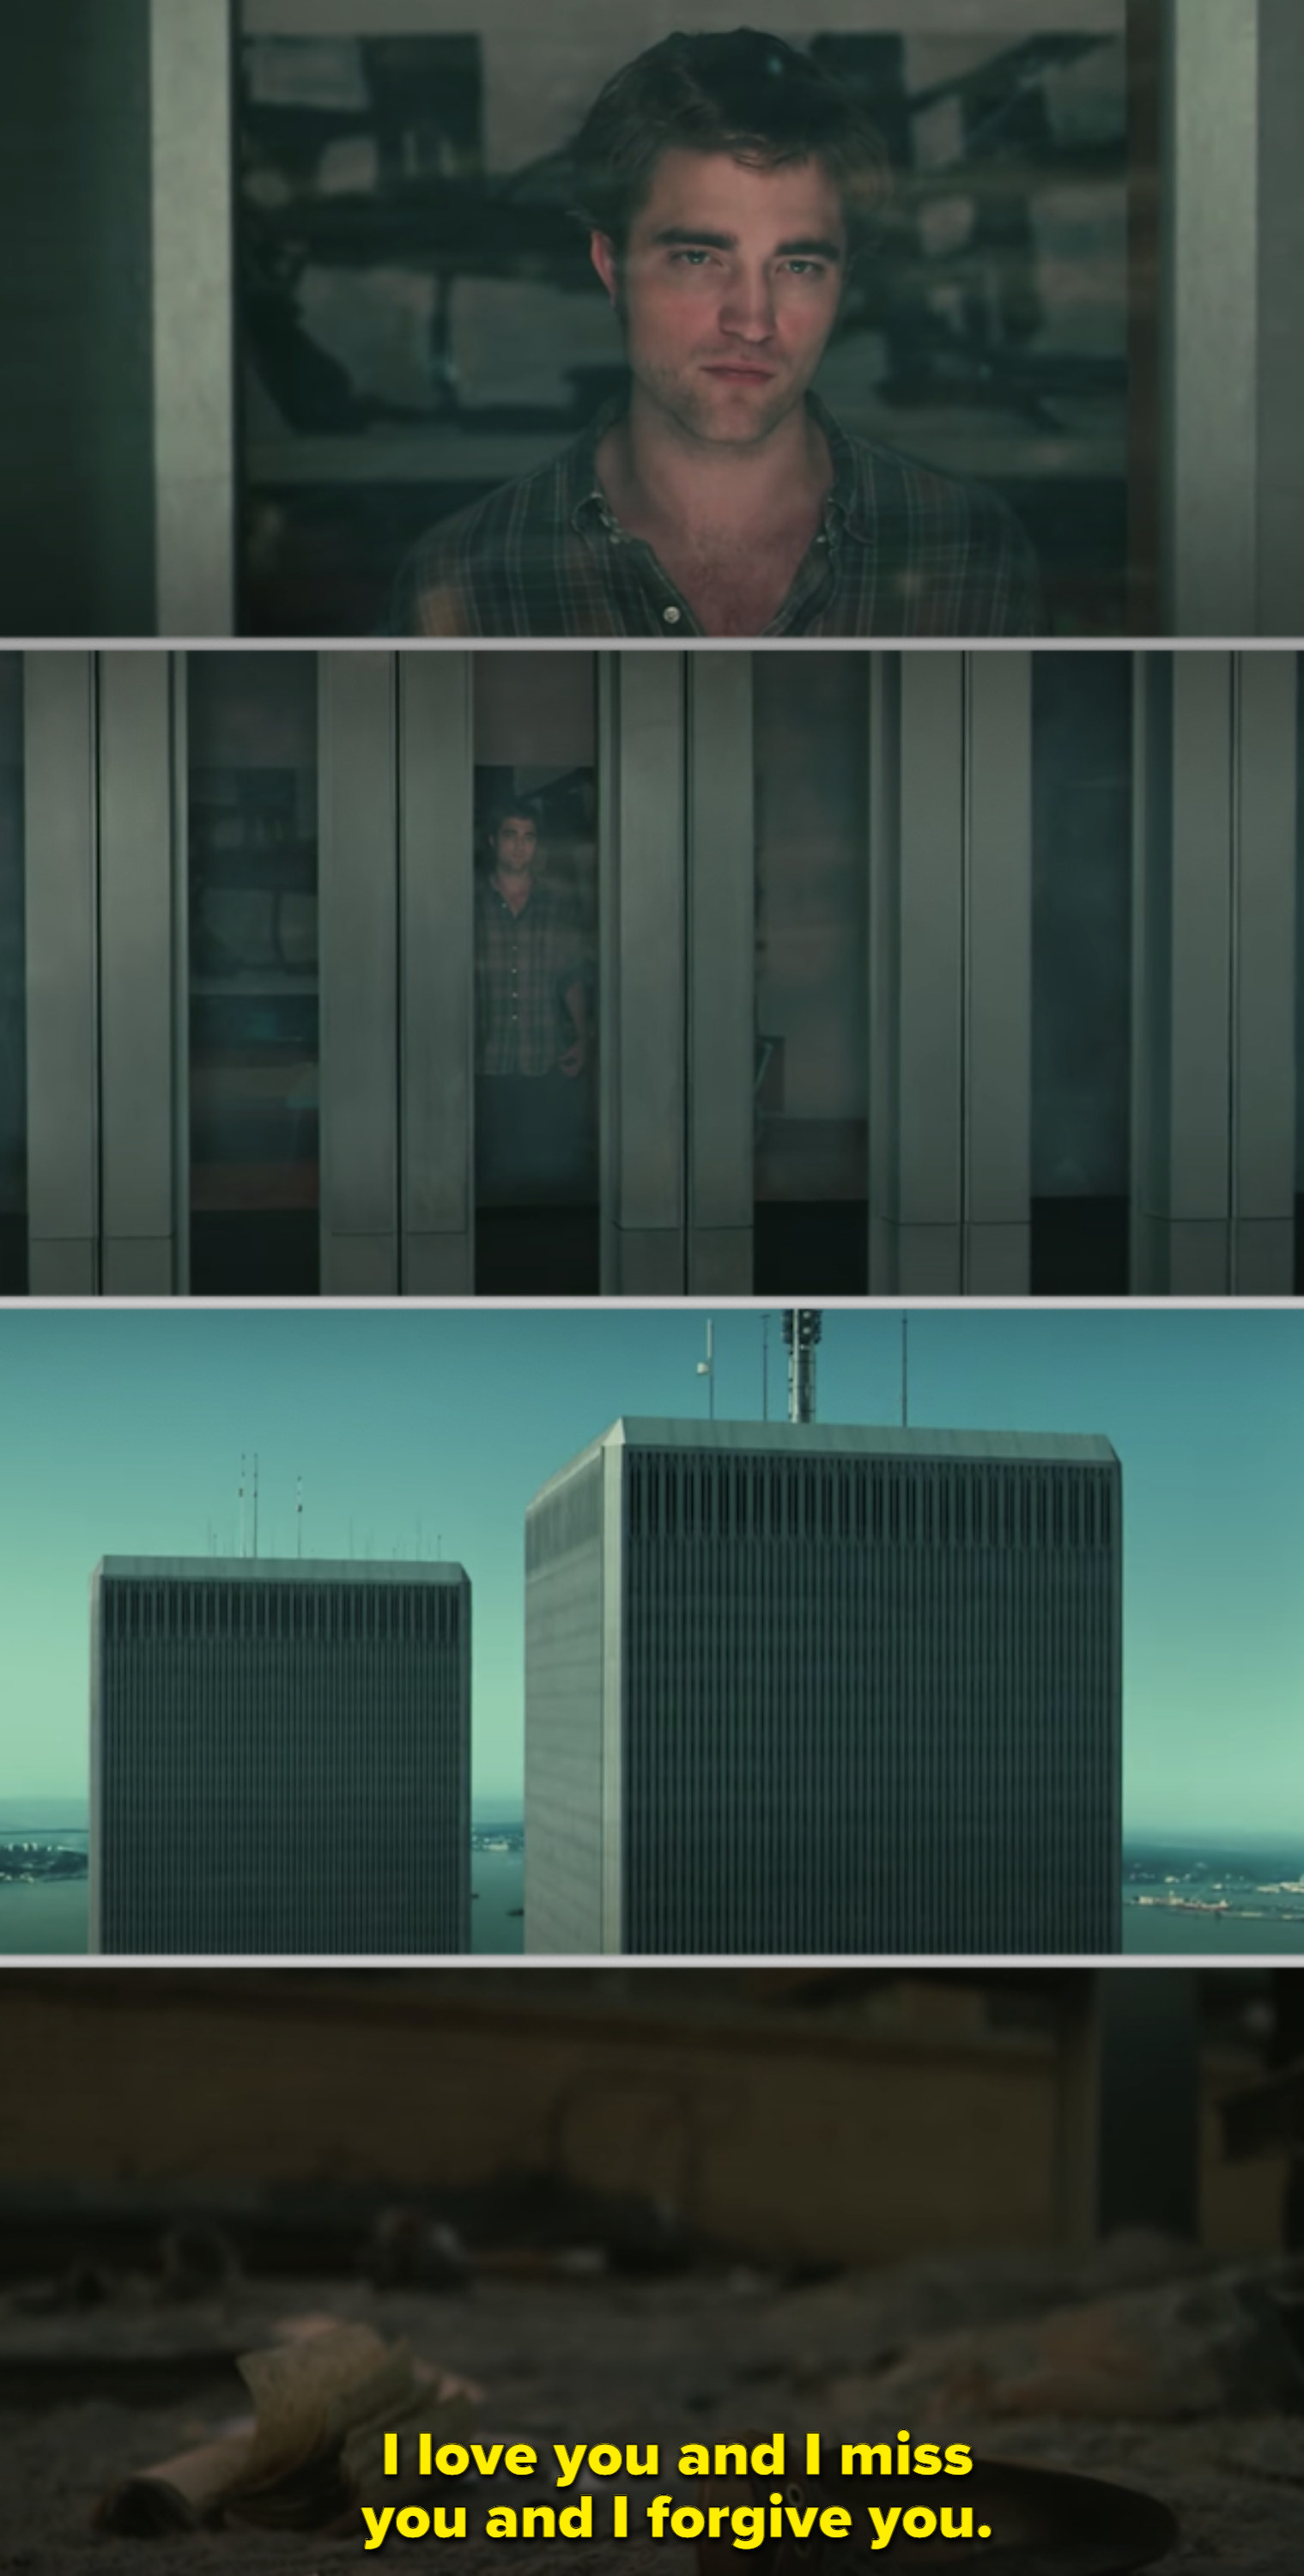 Robert Pattinson's character looking out the window of one of the Twin Towers